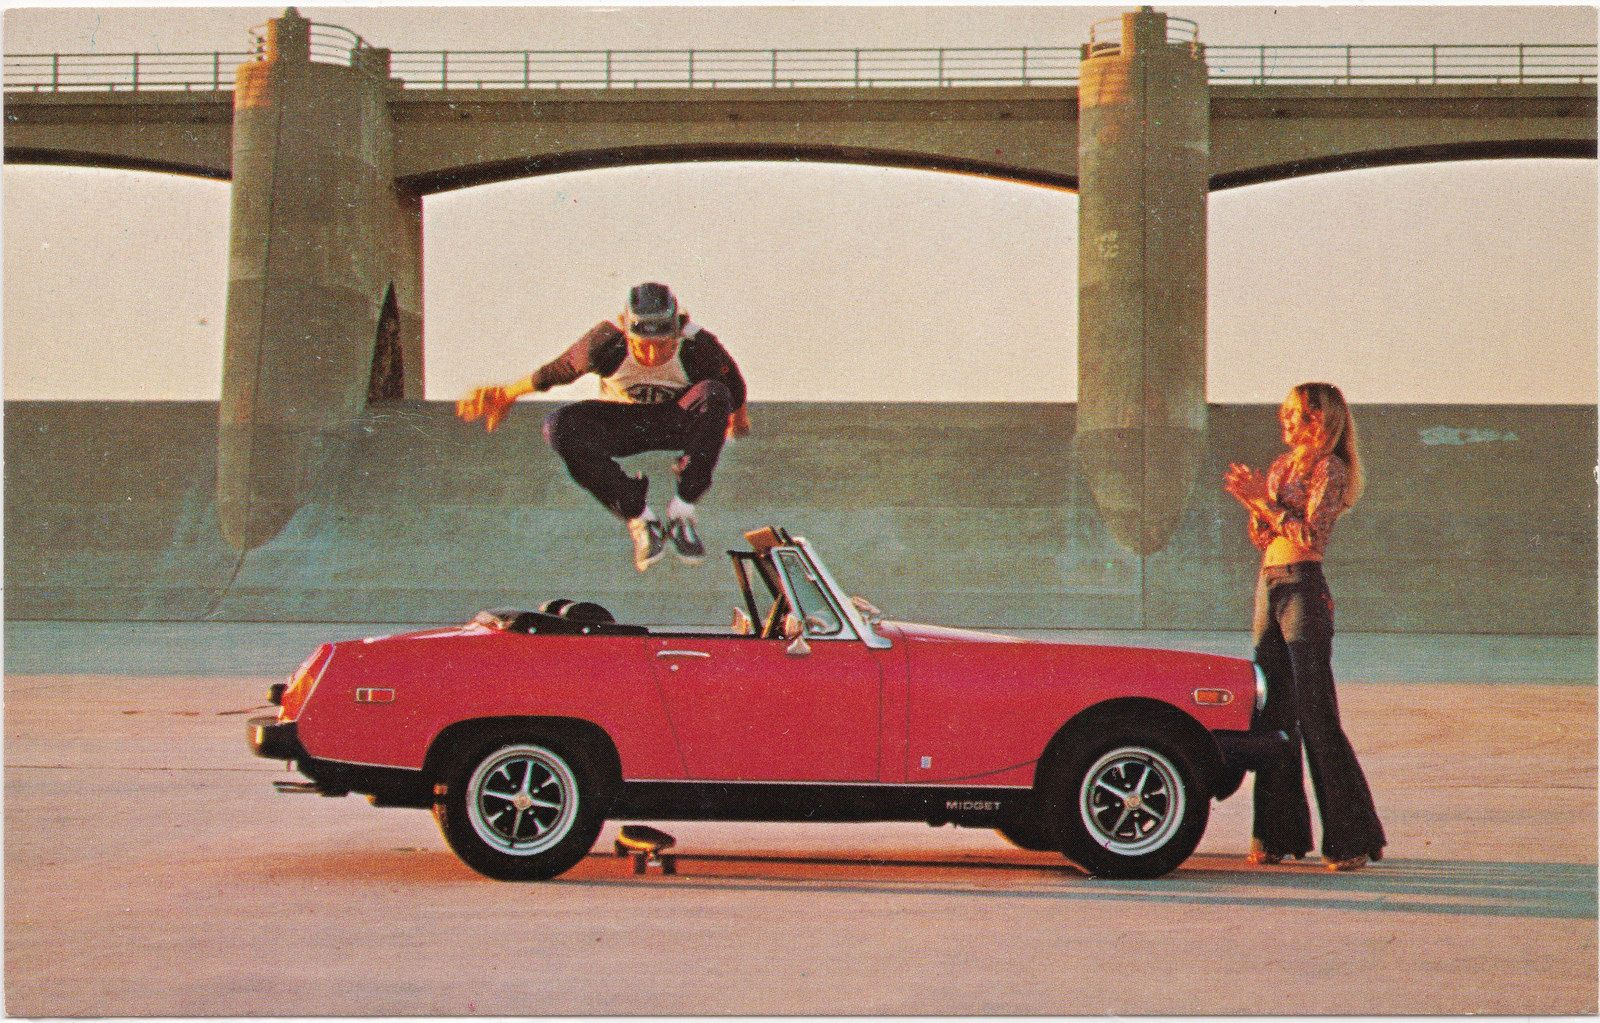 1970s British Leyland Mg Midget Is A Small Two Seater Sports Car